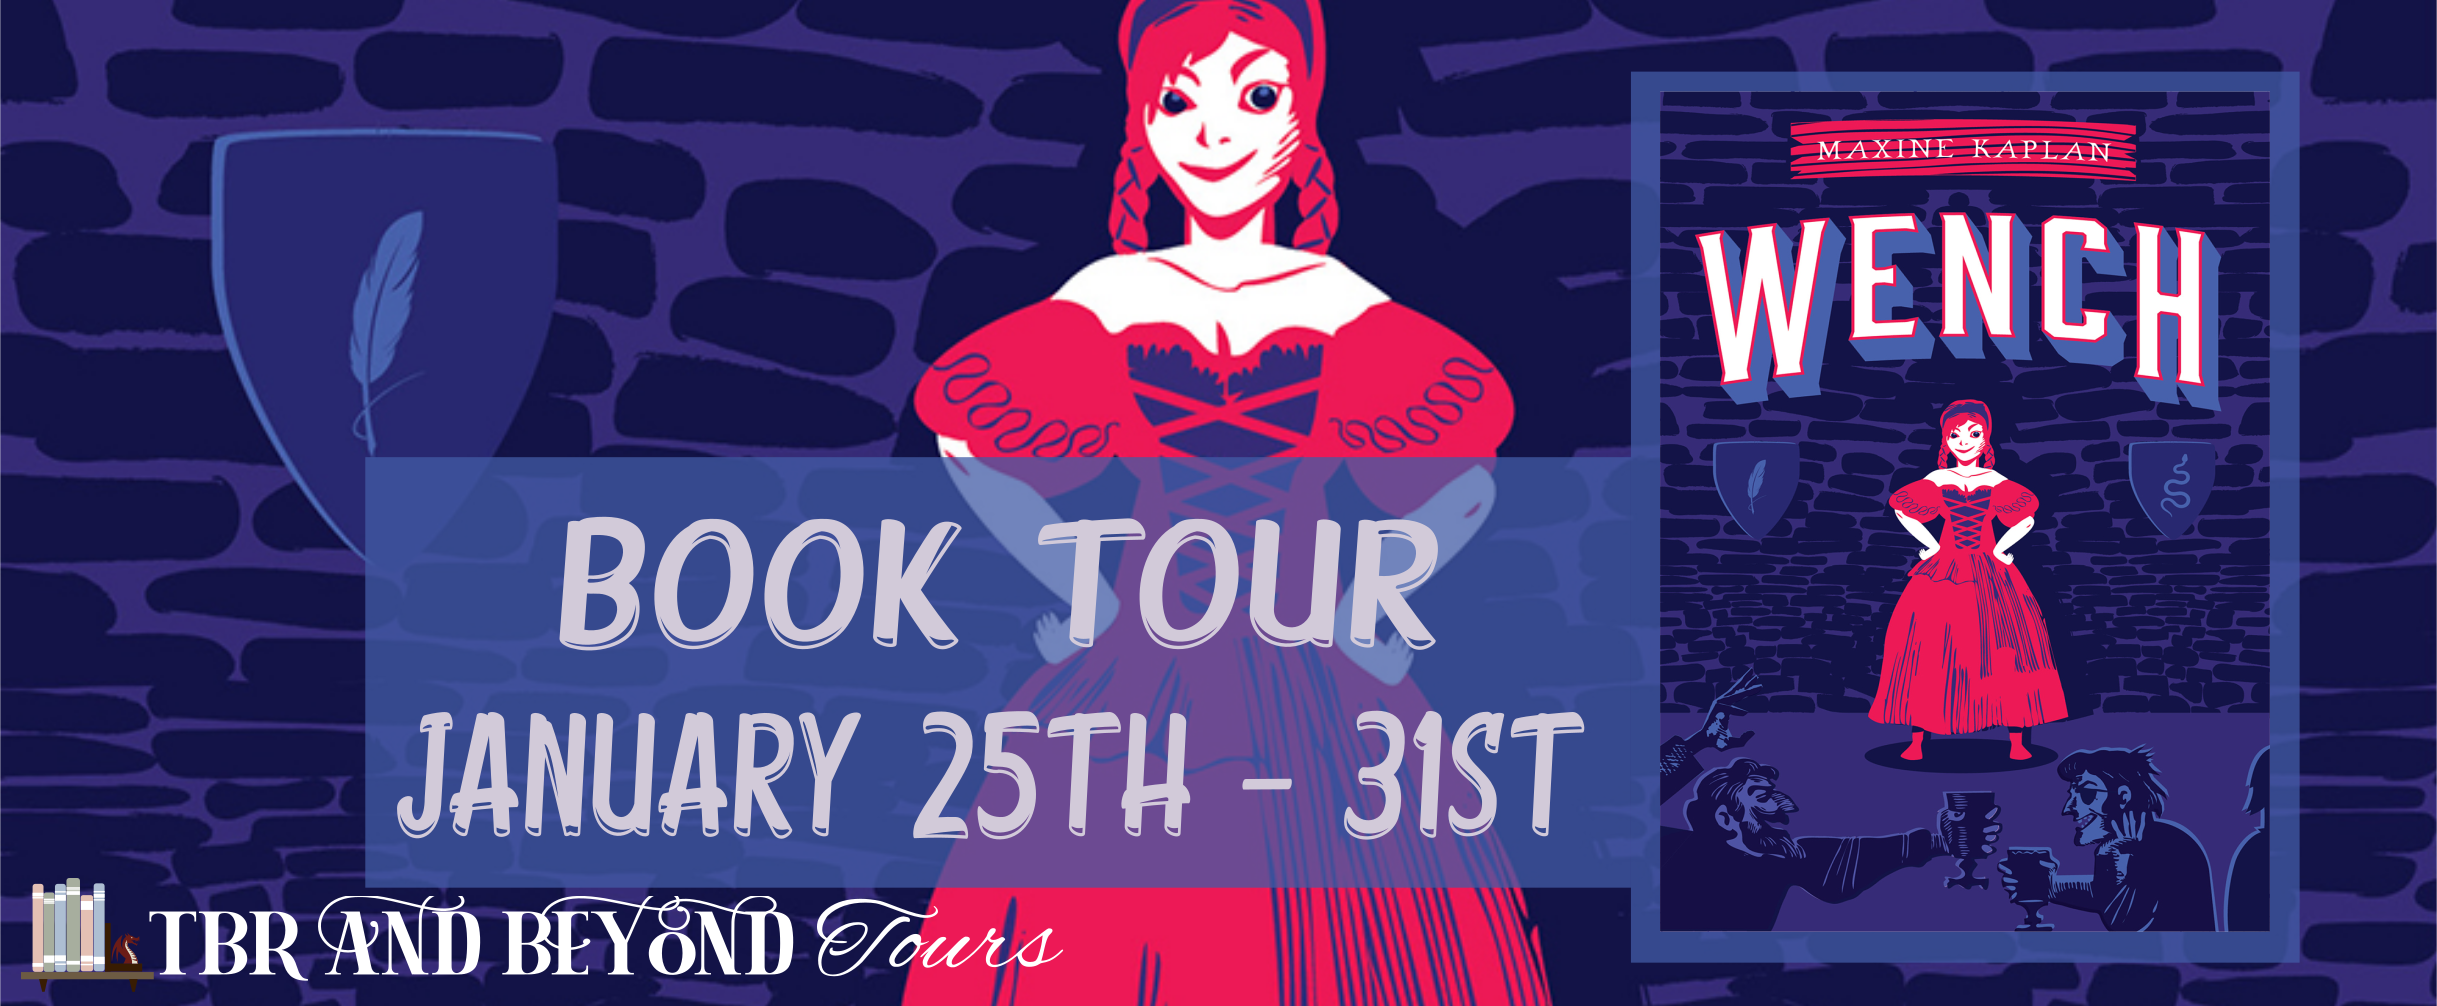 Blog Tour: Wench by Maxine Kaplan (Interview + Giveaway!)